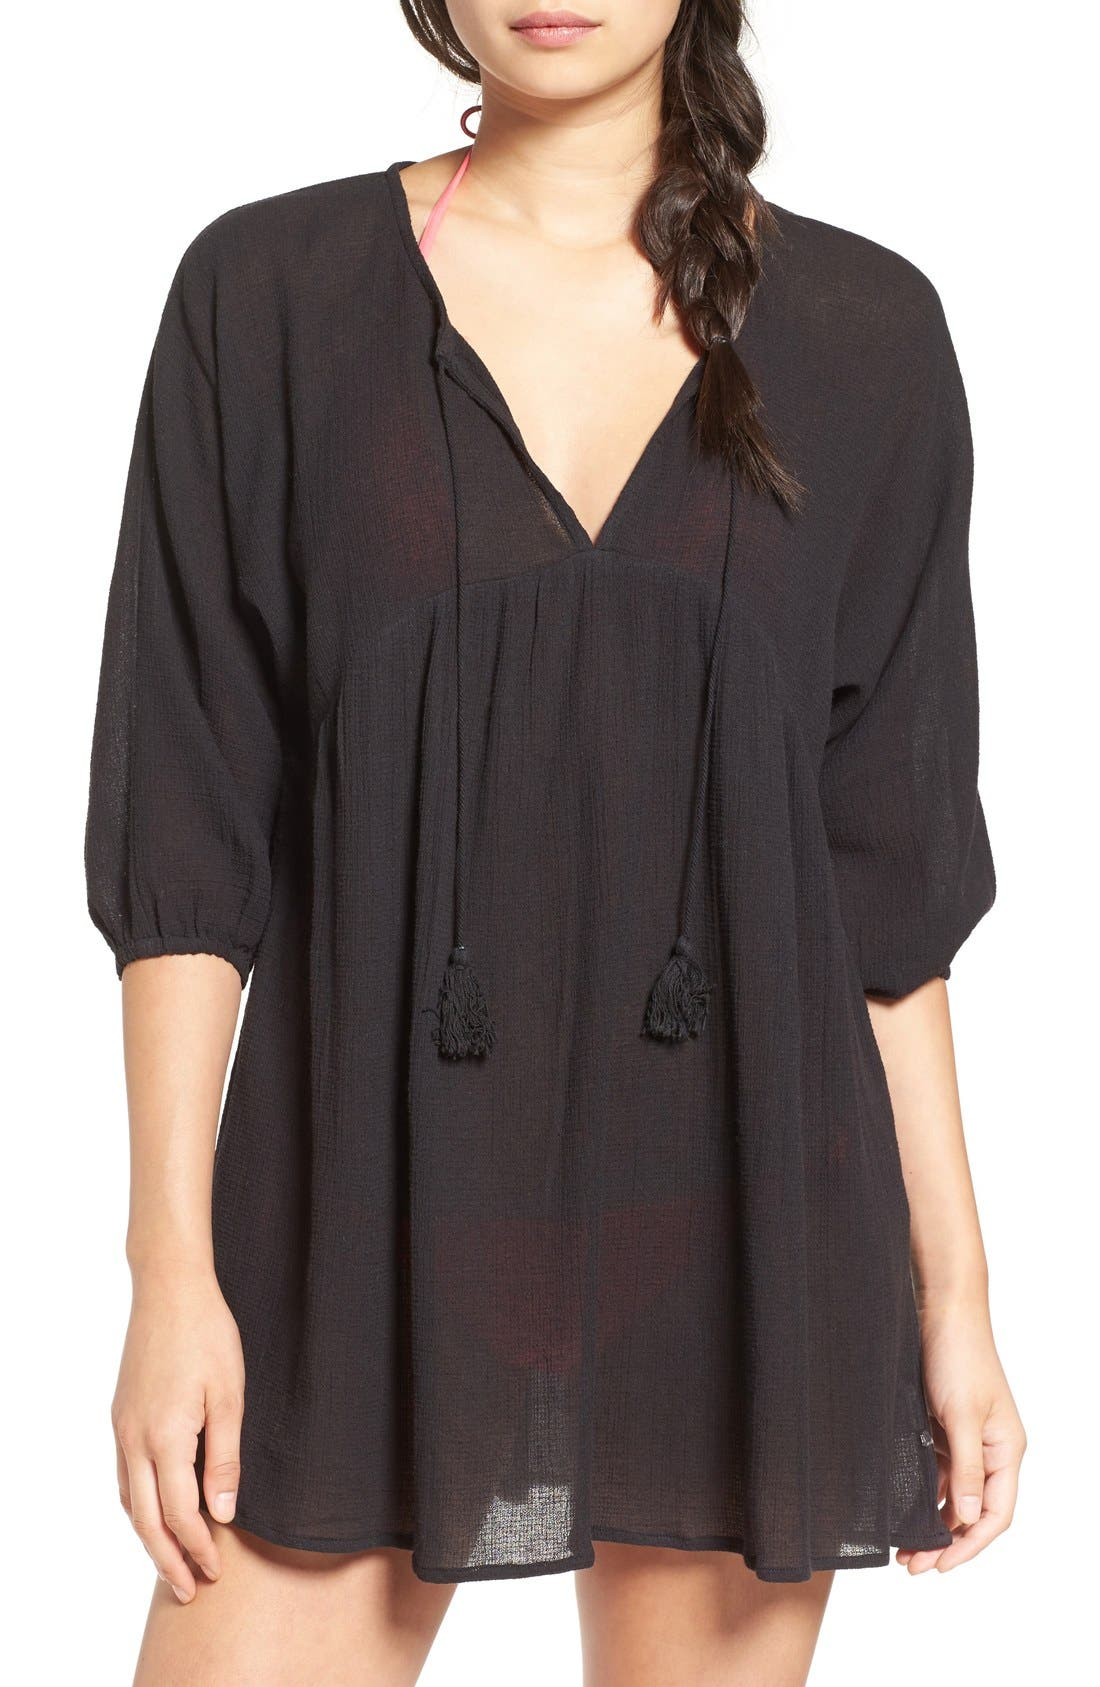 Alternate Image 1 Selected - Billabong 'Wild Shores' Woven Cover-Up Tunic